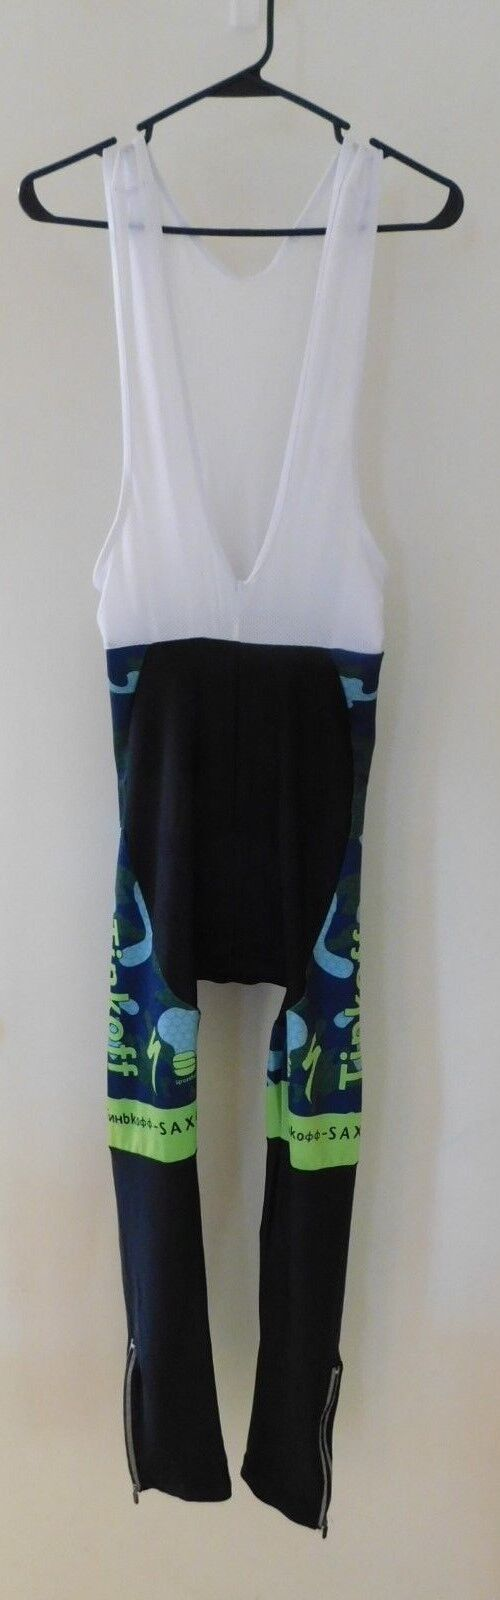 Tinkoff Winter Cycling Pant in bluees and Greens size Large Pant only